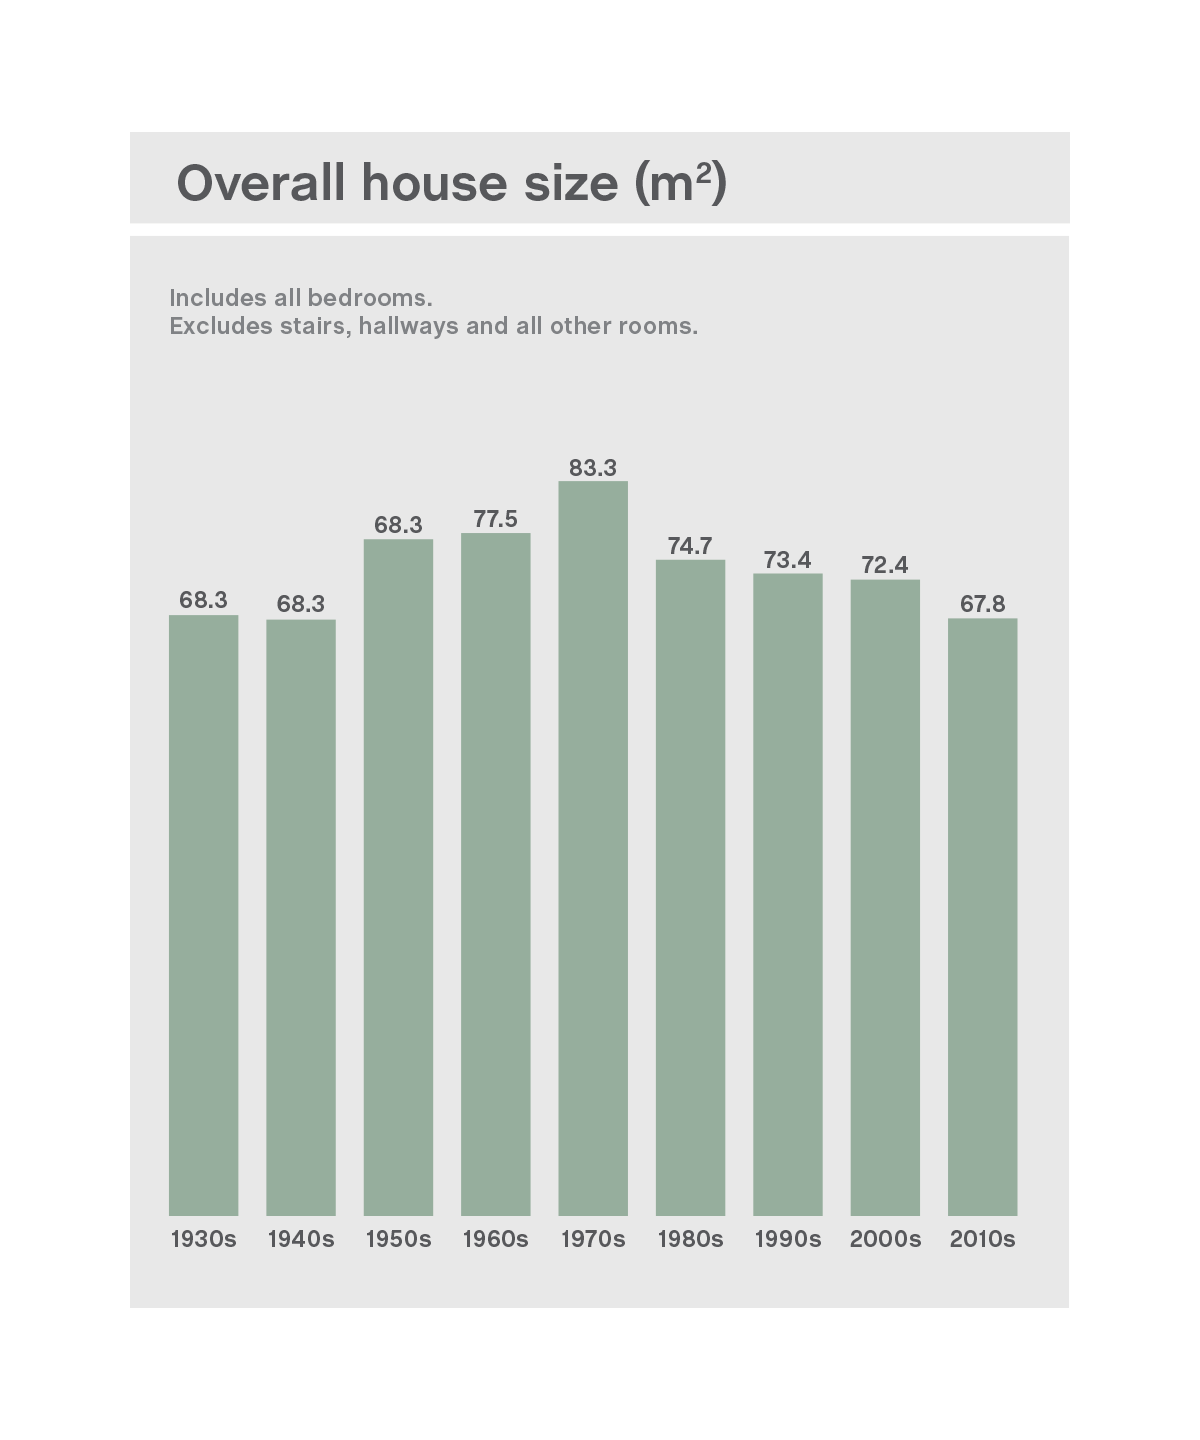 House size reduction graph